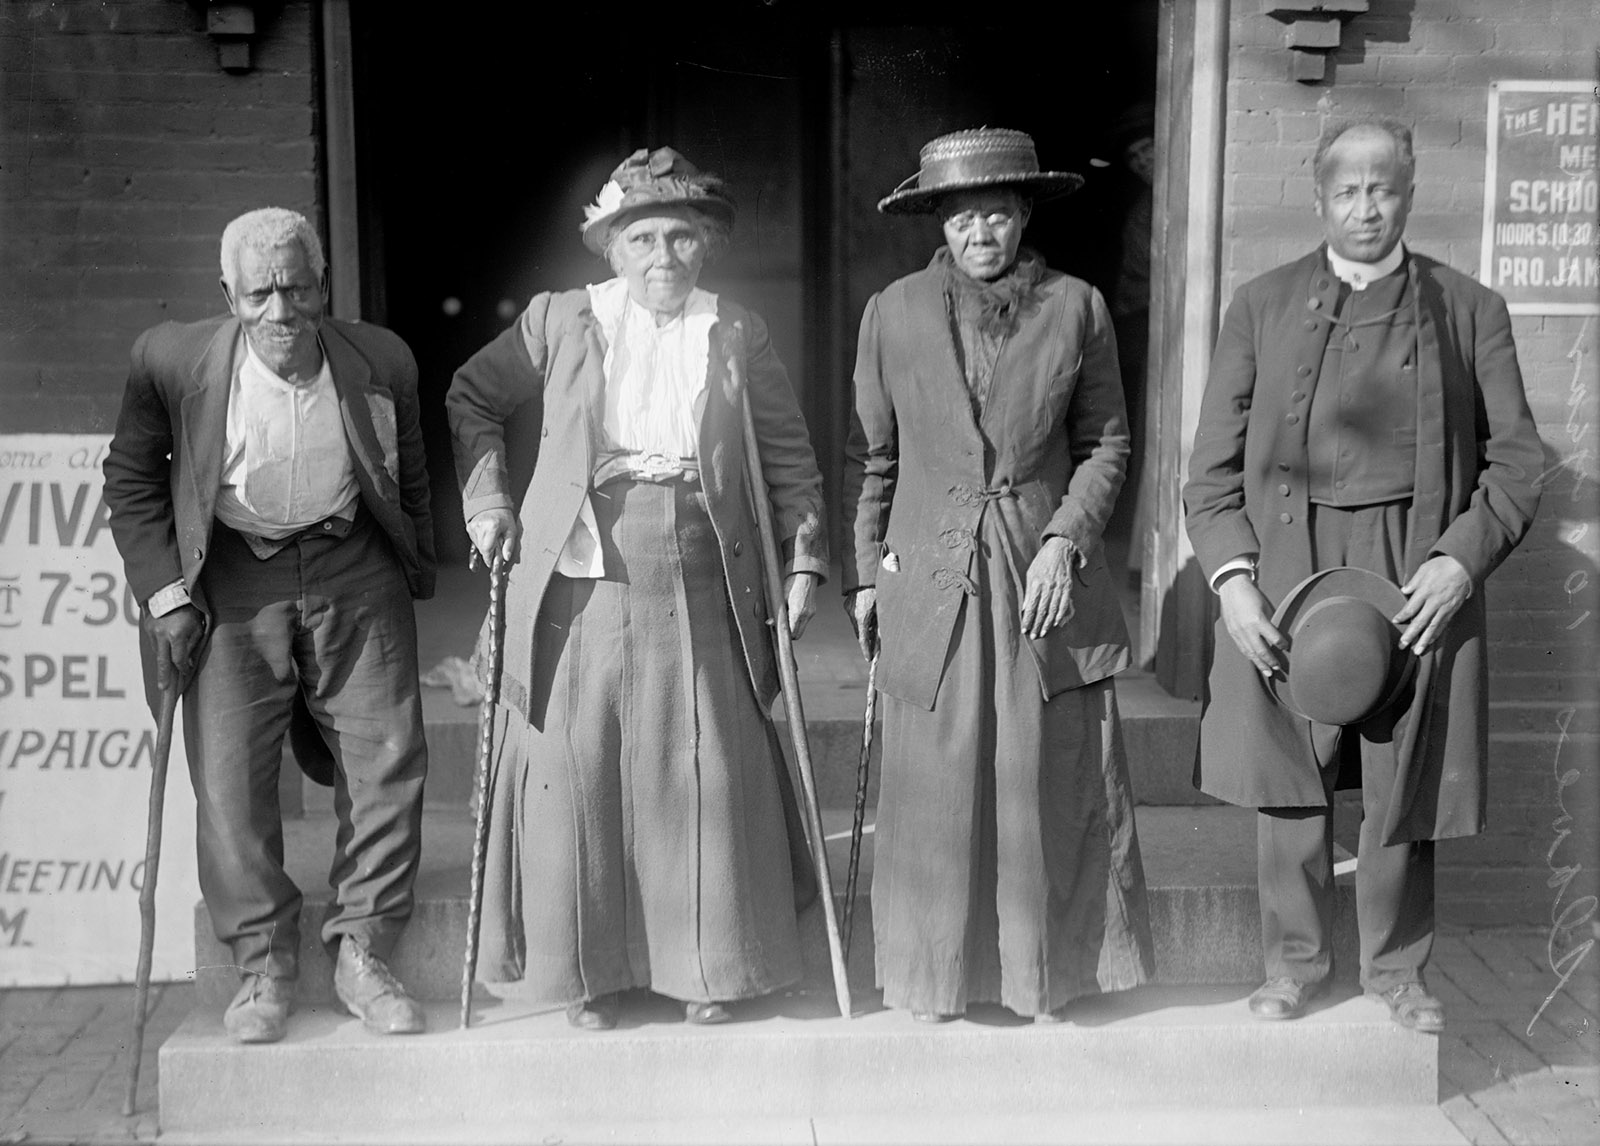 A reunion of former slaves at the Cosmopolitan Baptist Church, Washington, D.C., 1917. From left to right, Lewis Martin, 100; Martha Elizabeth Banks, 104; Amy Ware, 103; and Reverend Simon P. Drew, who was born free.